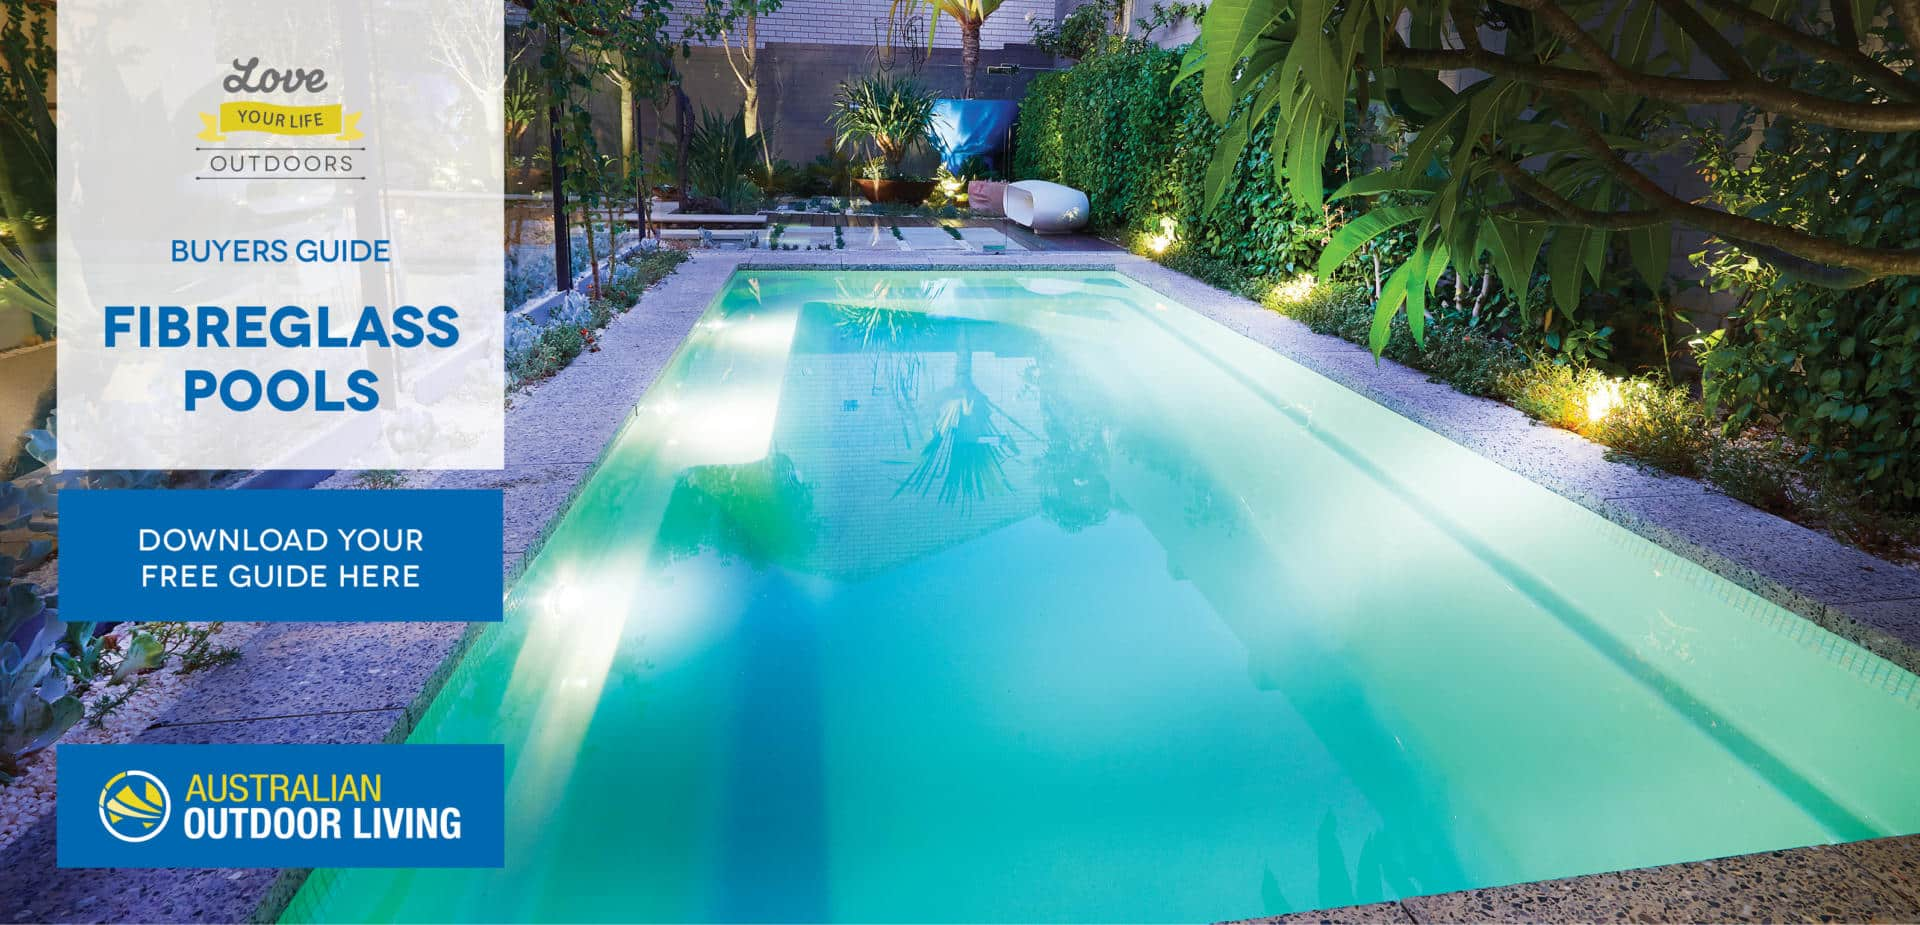 Buyers Guide - fibreglass Pools.